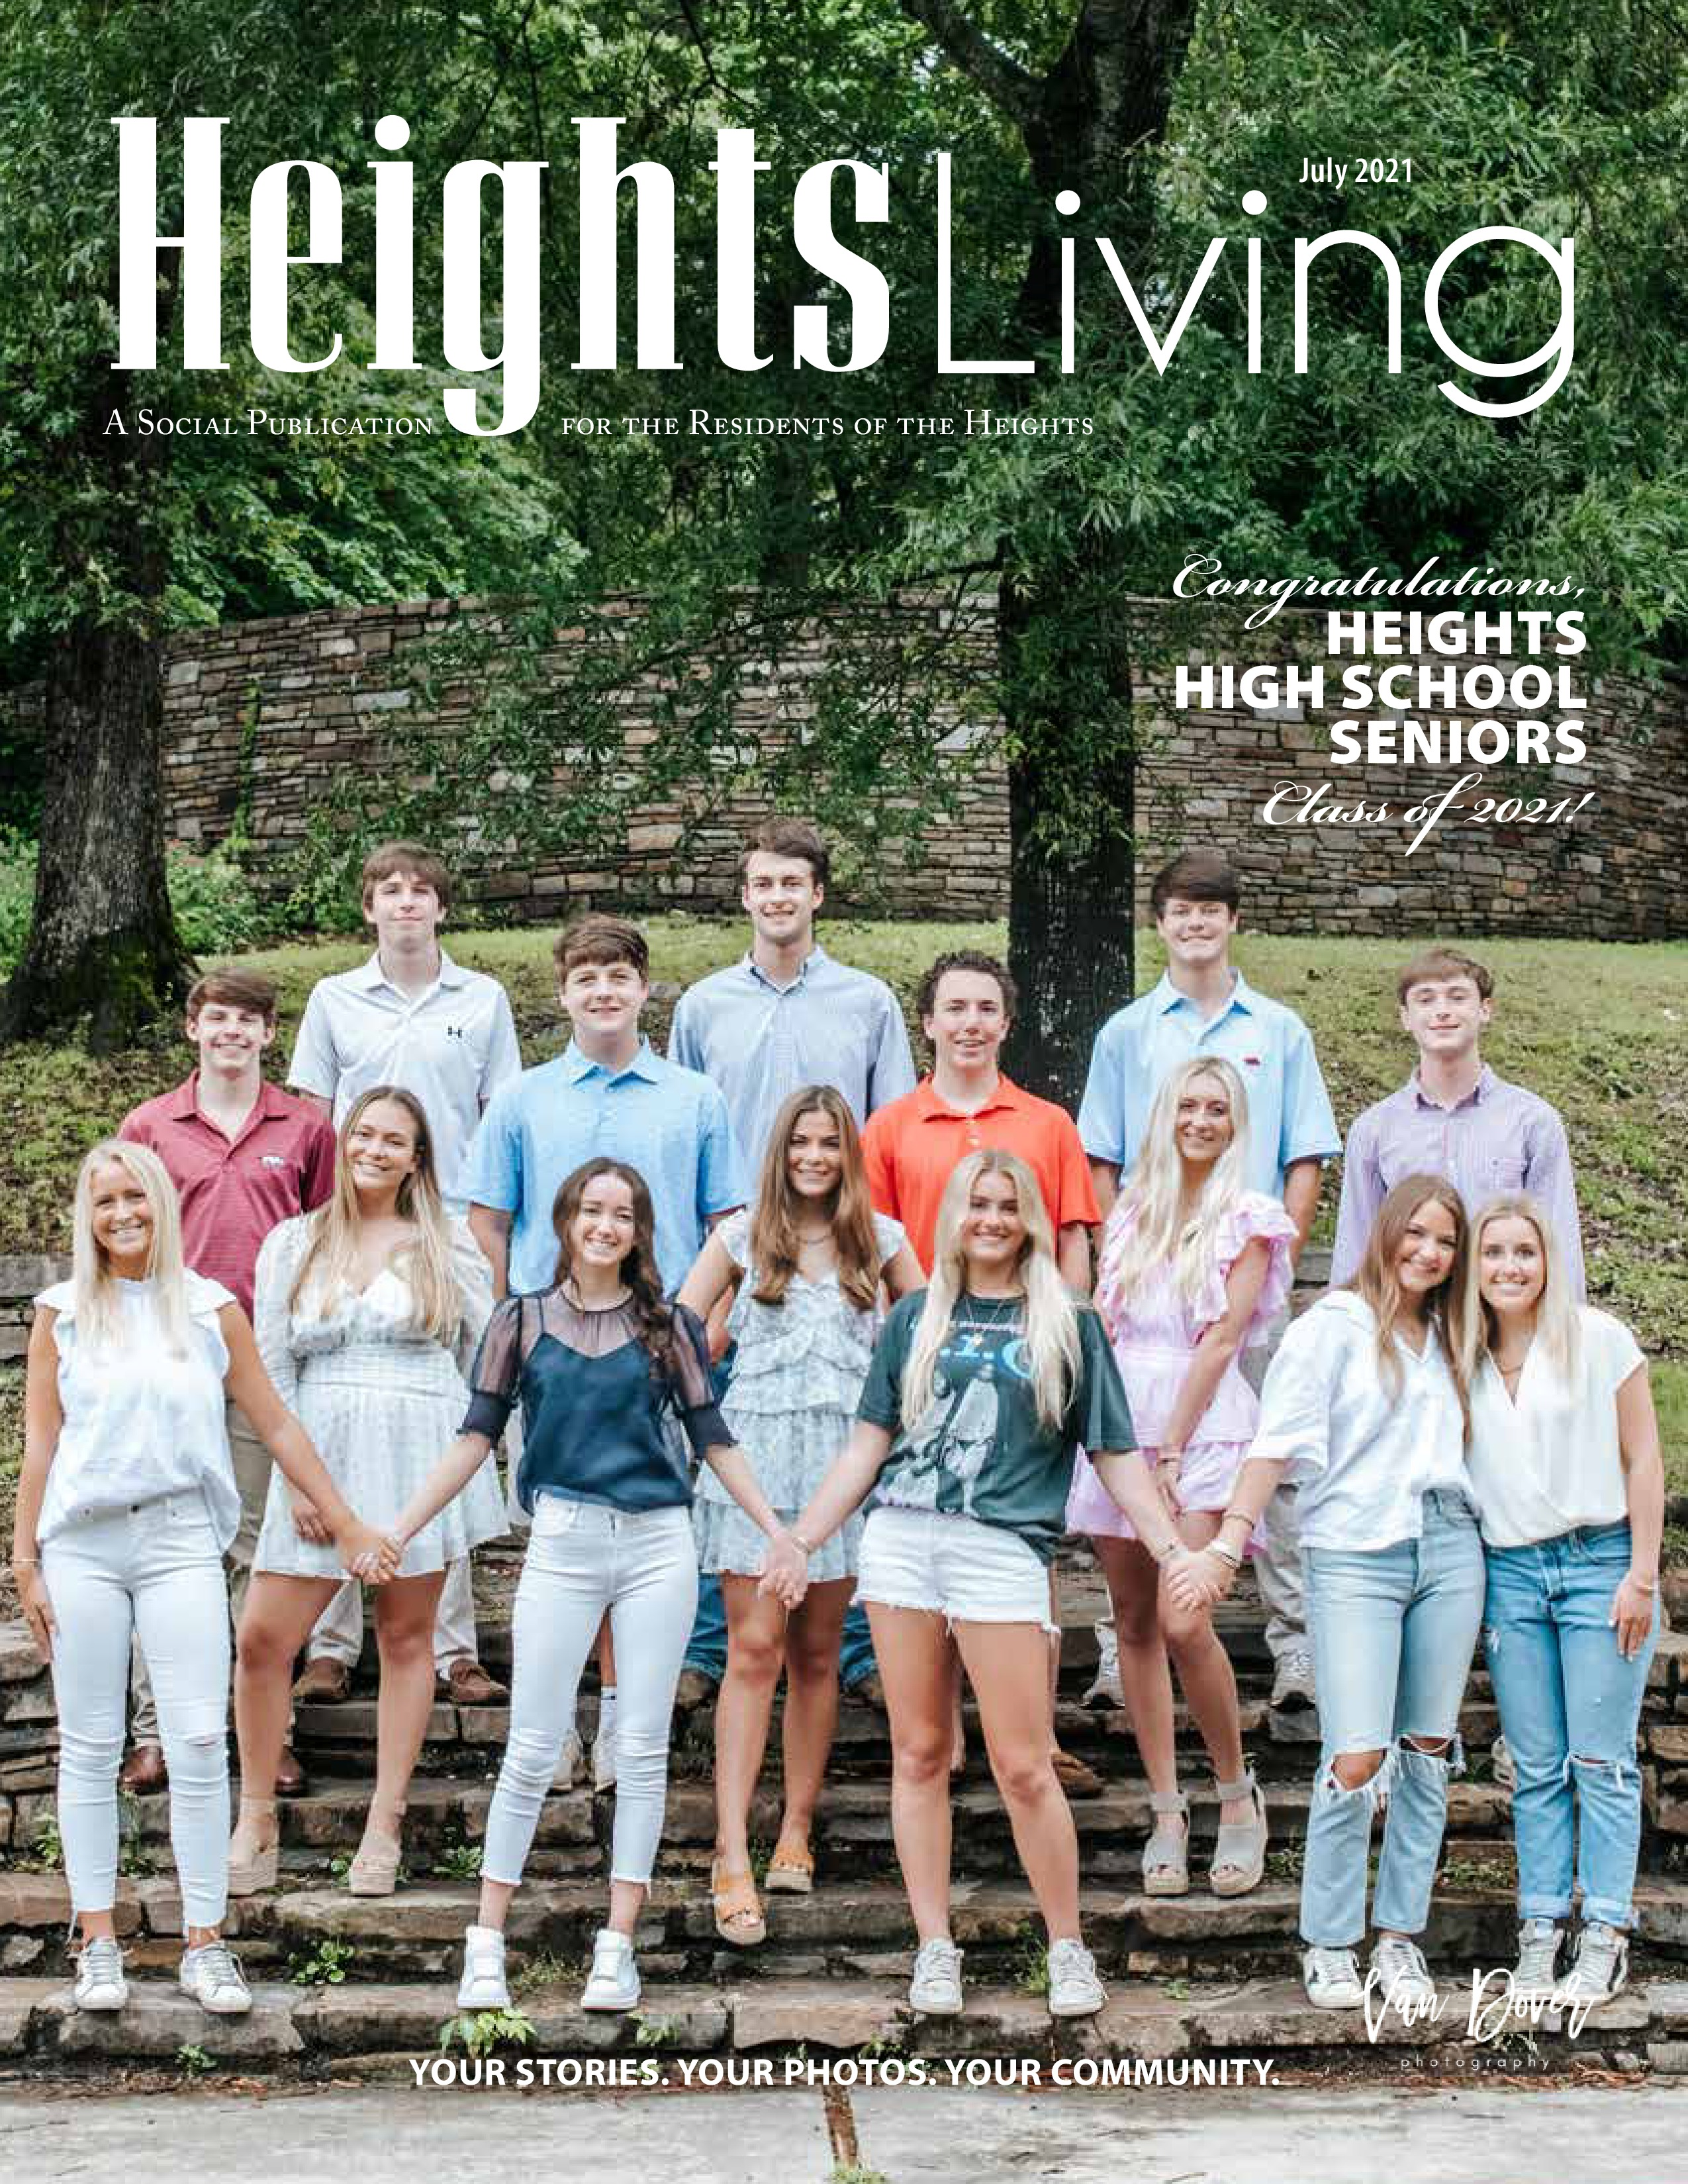 Heights Living 2021-07-01